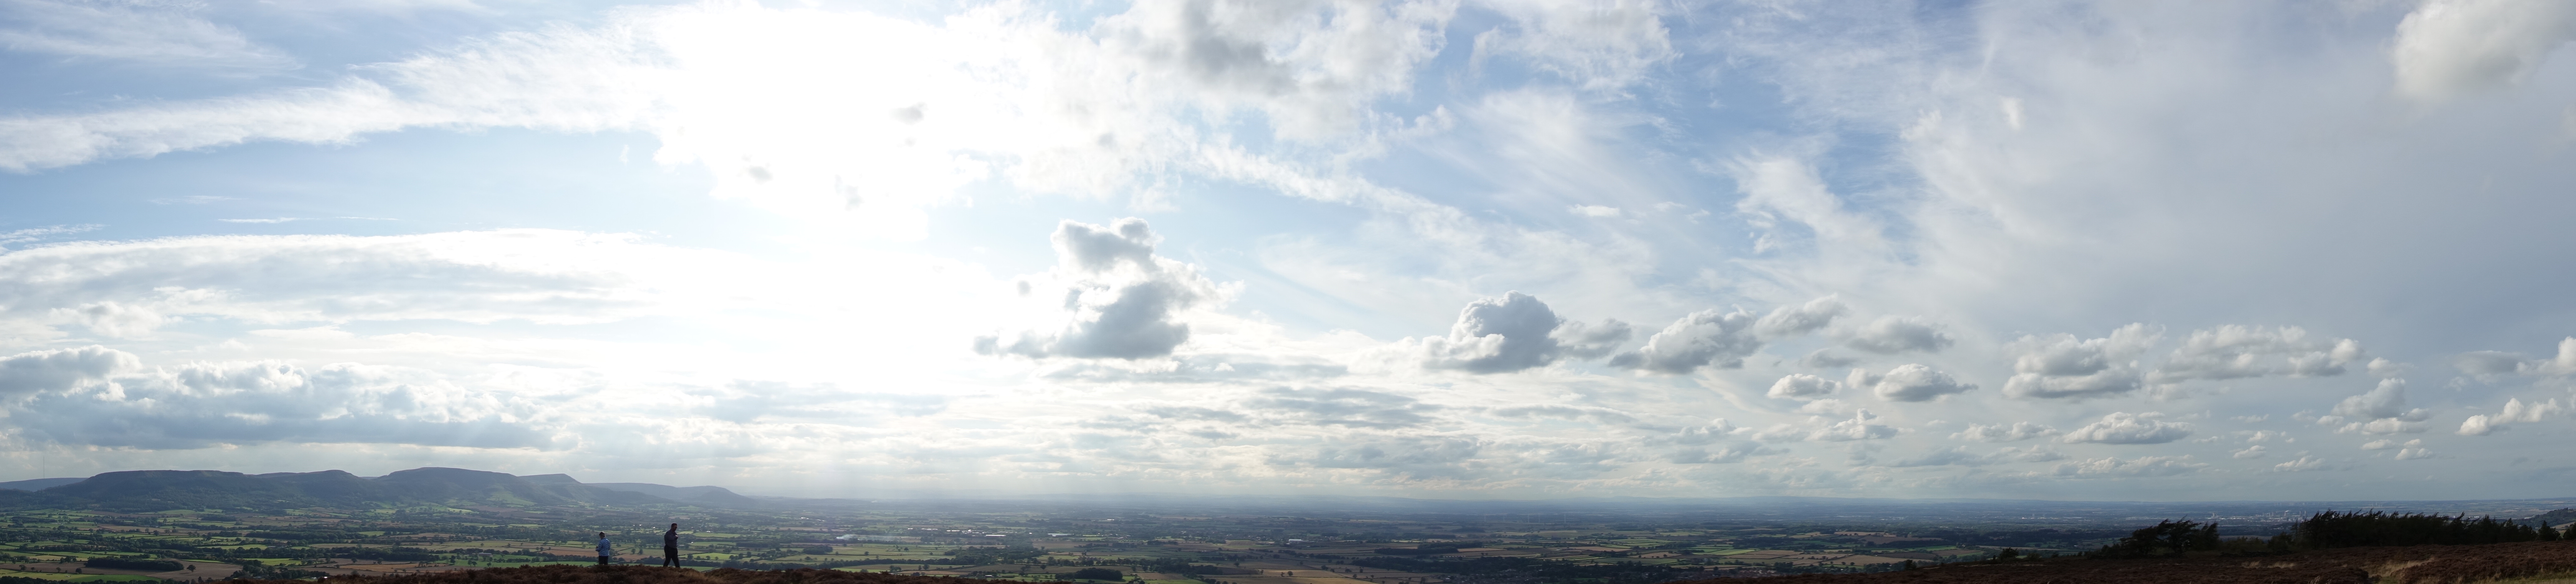 View from the western edge of the North York Moors across the plains to the Pennines